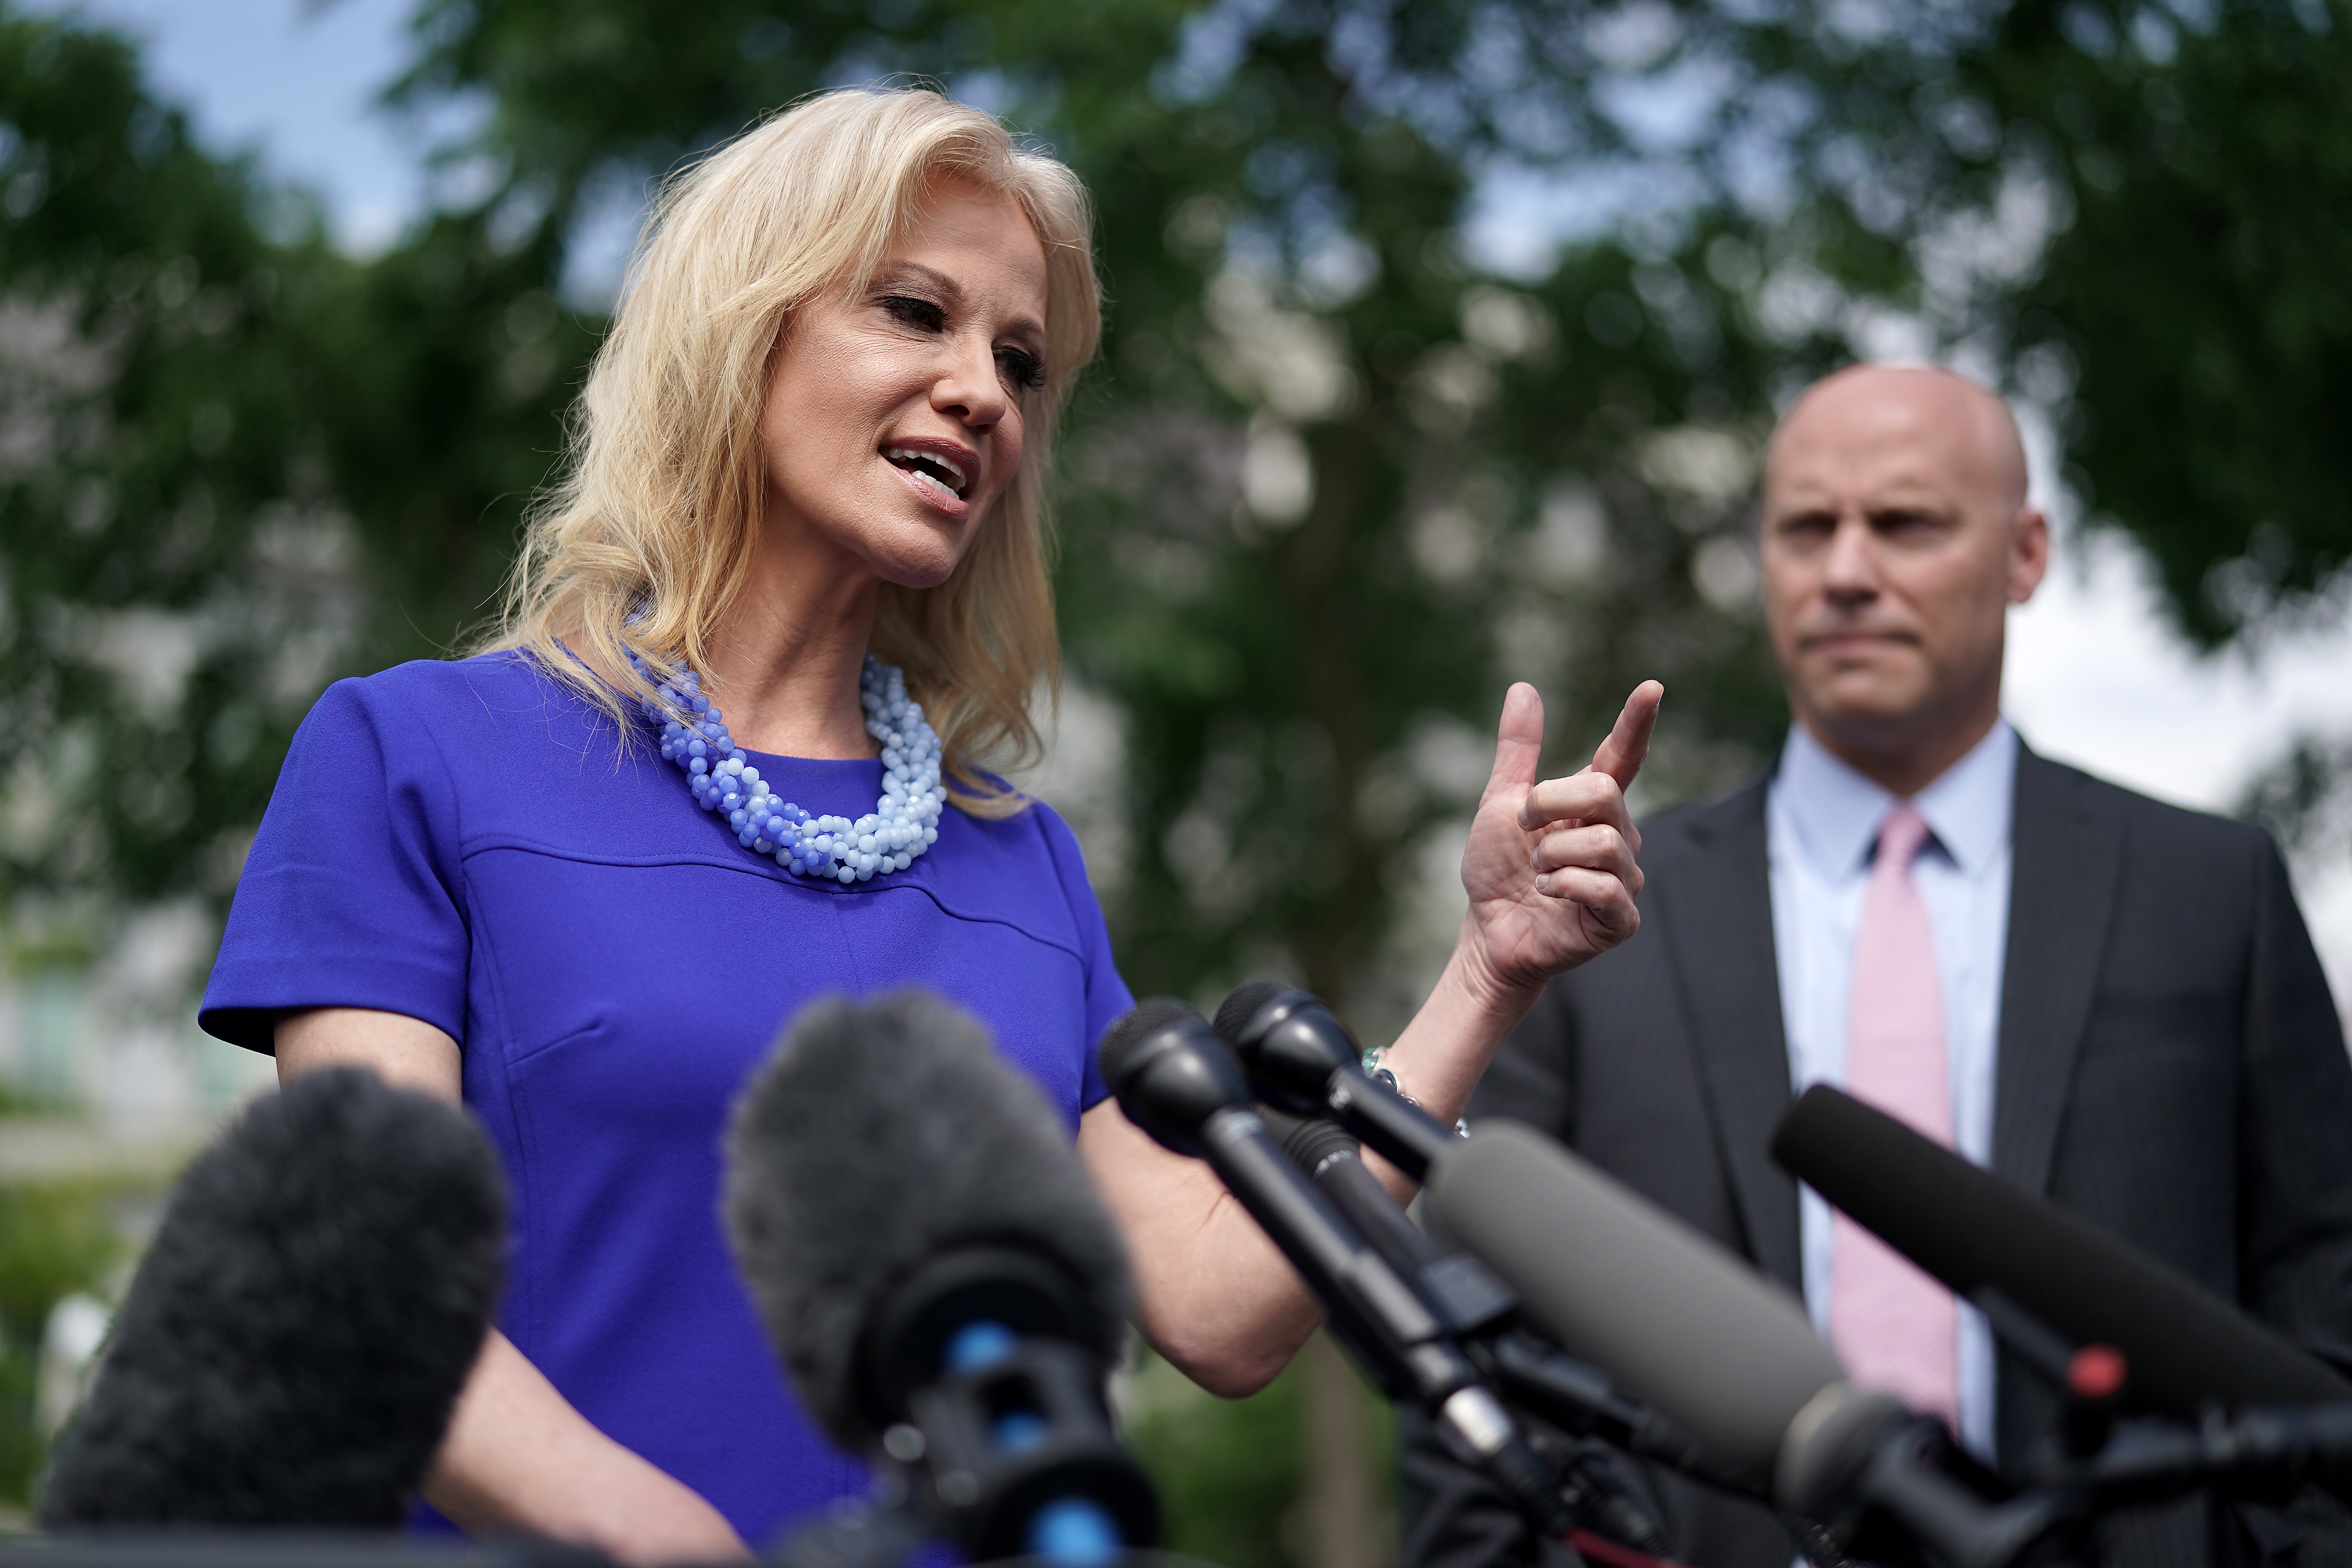 Kellyanne Conway accused Pelosi of sexism. It's not the first time she's used that card.